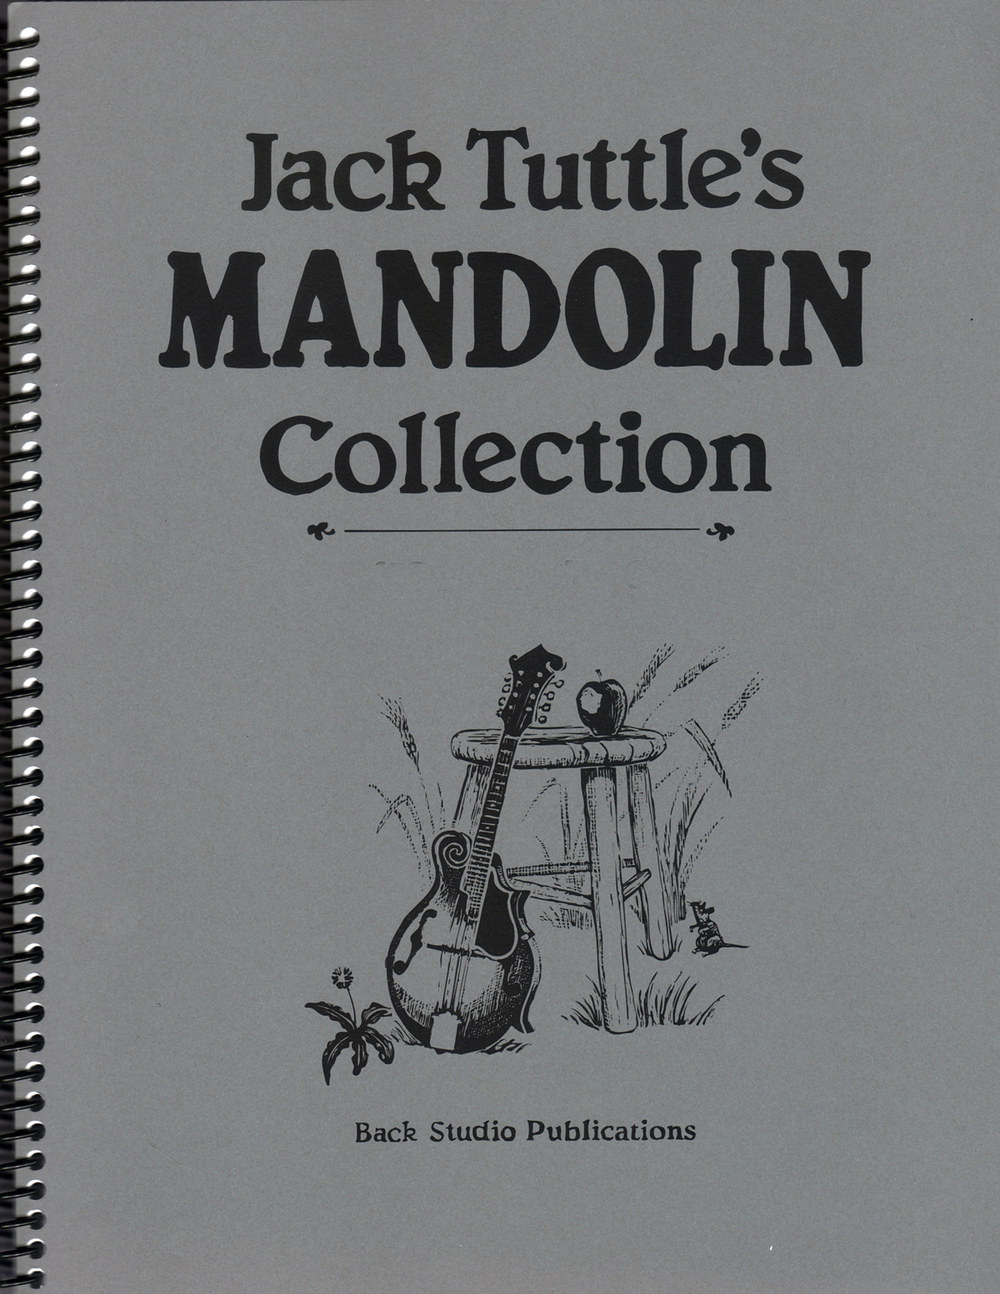 Jack Tuttle's Mandolin Collection, Vol. 2